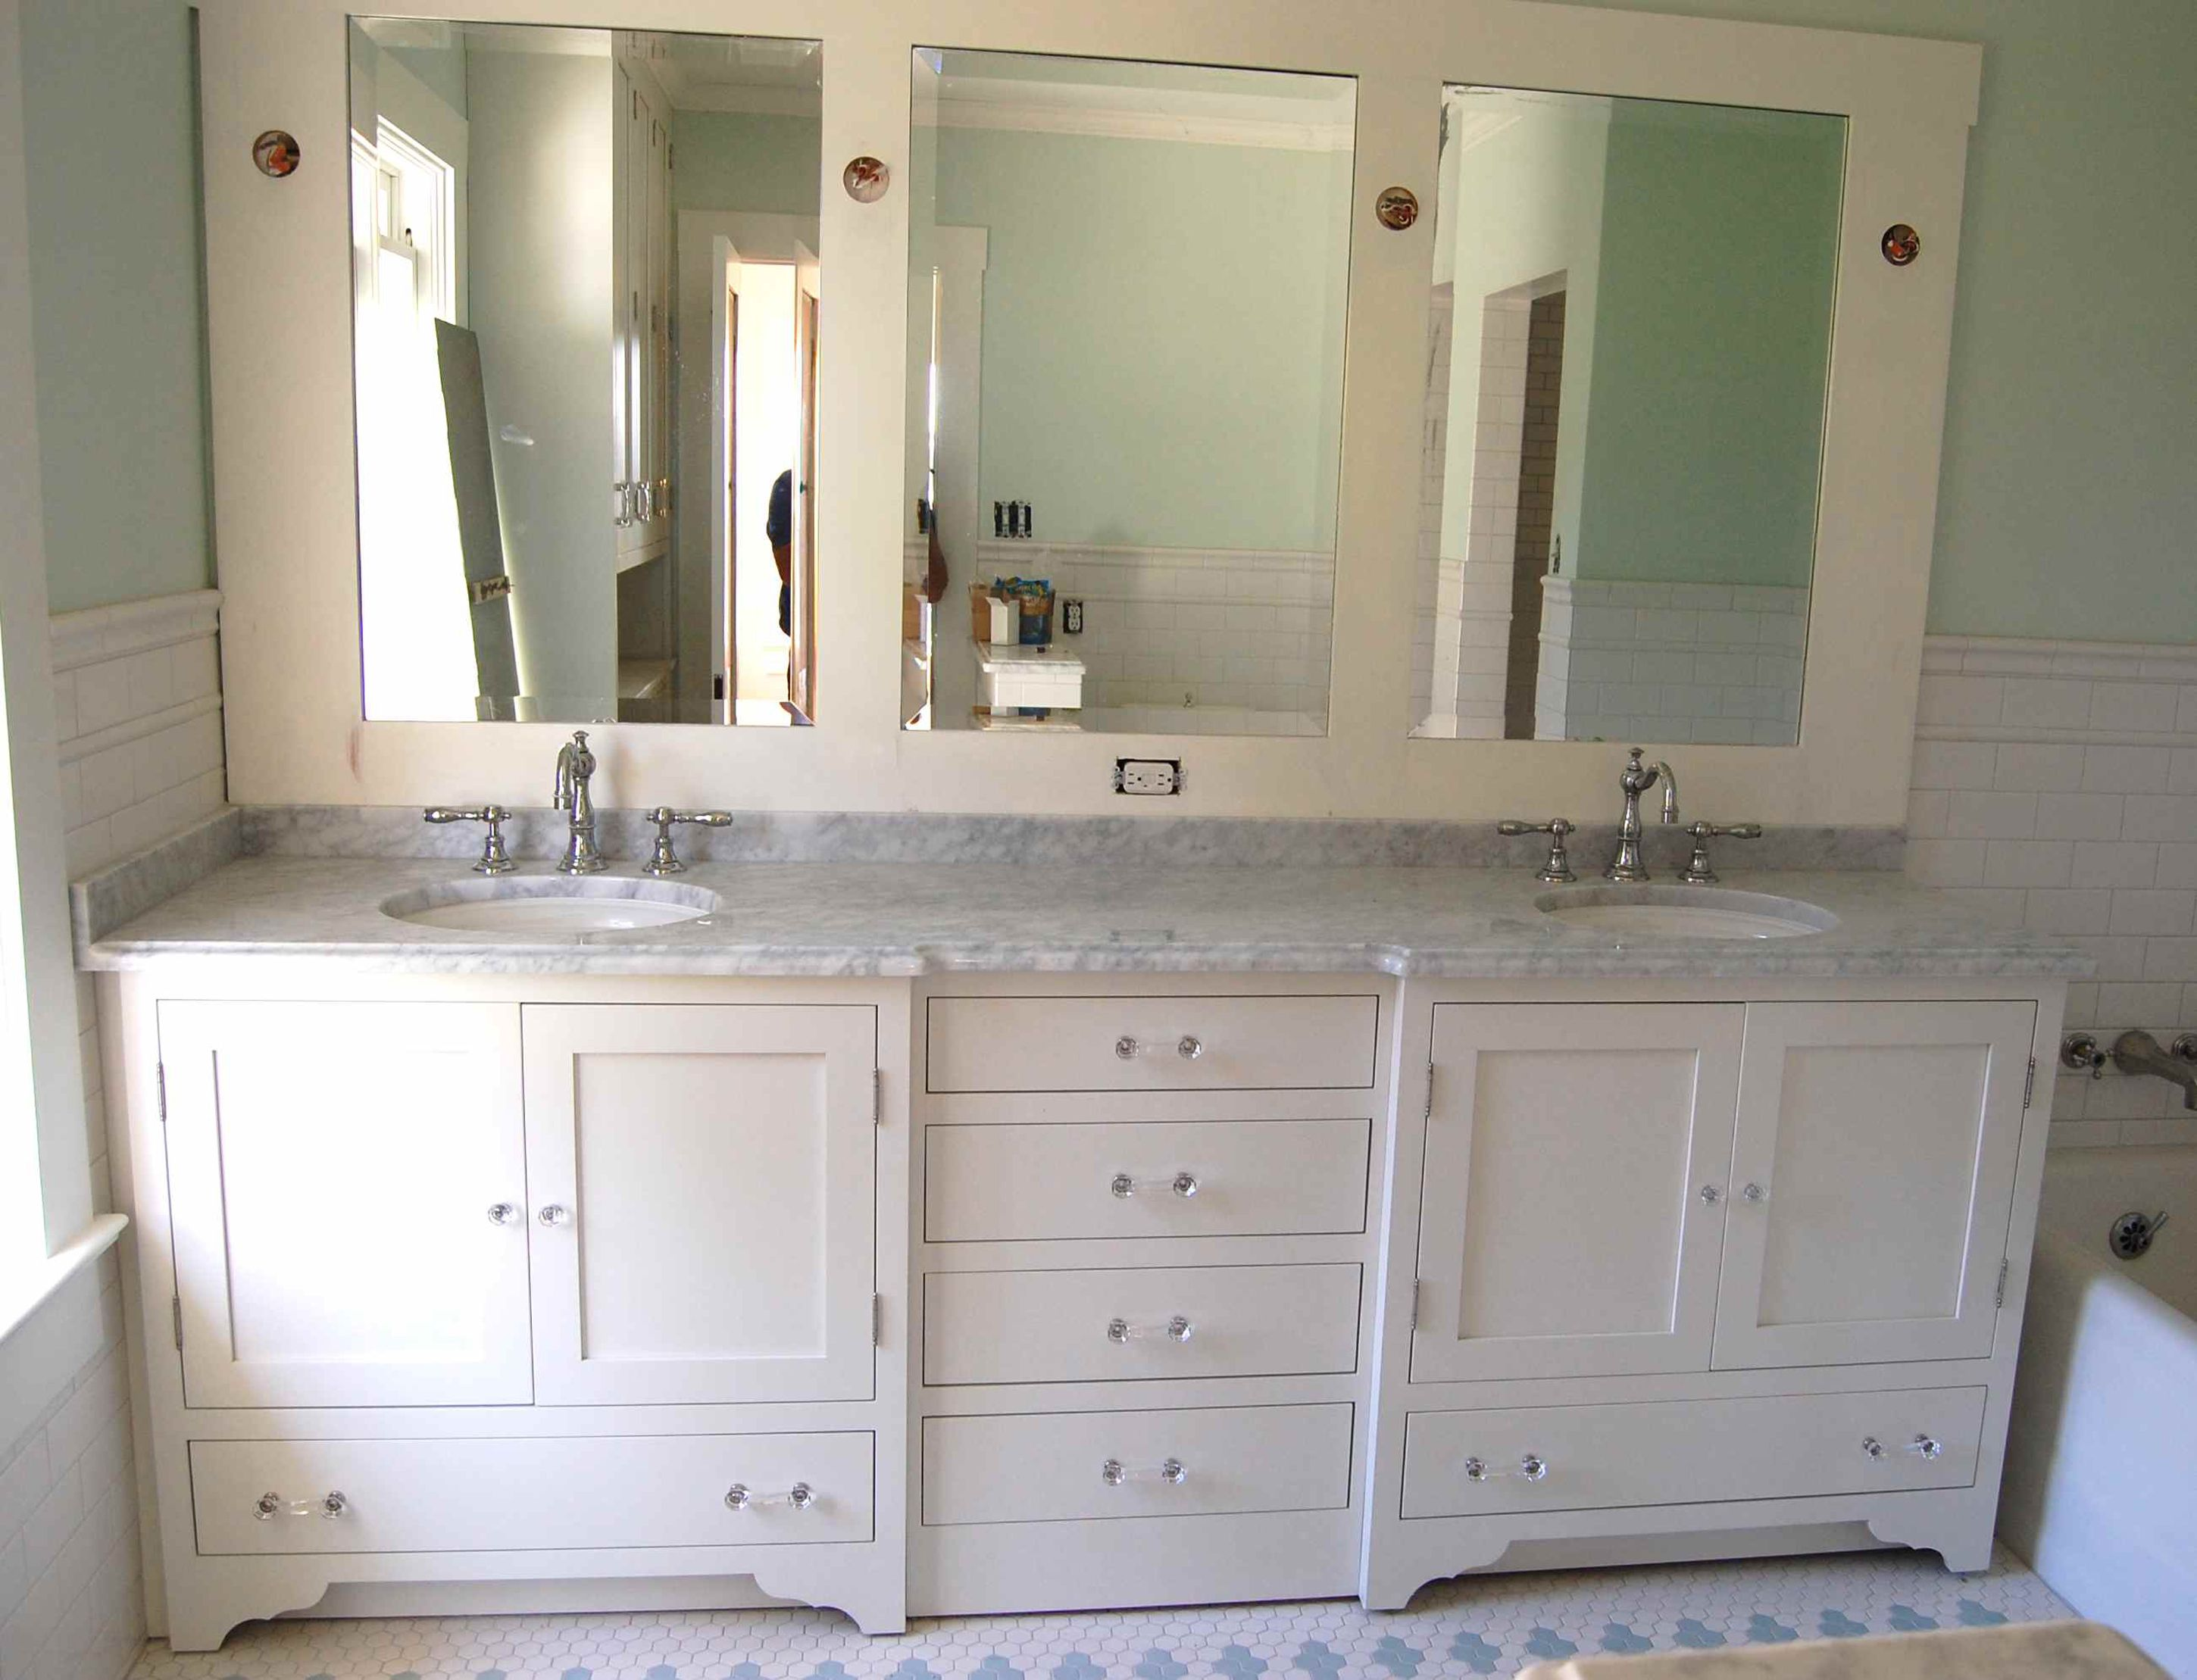 Bathroom Vanities Design Ideas Endearing Lovable White Bathroom Vanity Cabinet Design Idea With Gray Design Ideas